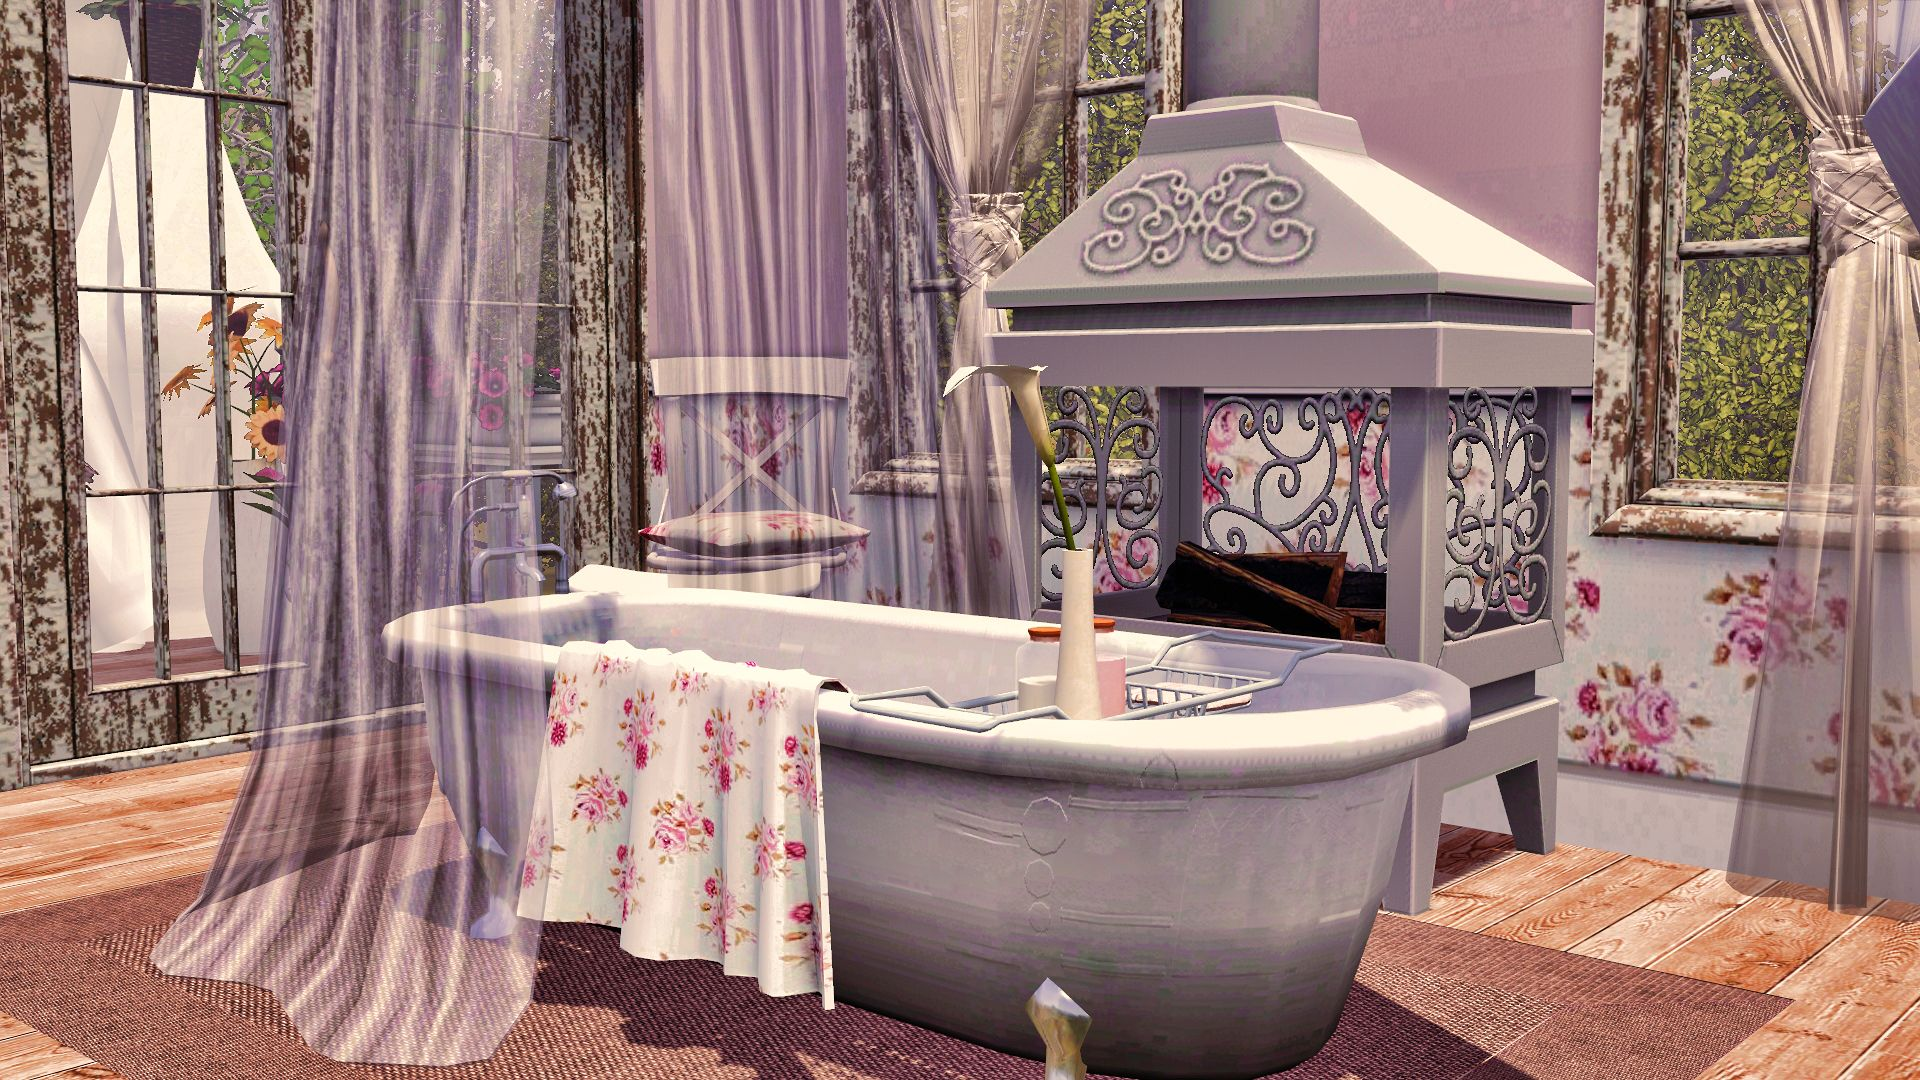 Sims 3 Bedroom Sims 3 Cottage Bedroom Google Search The Sims 3 Decor Design